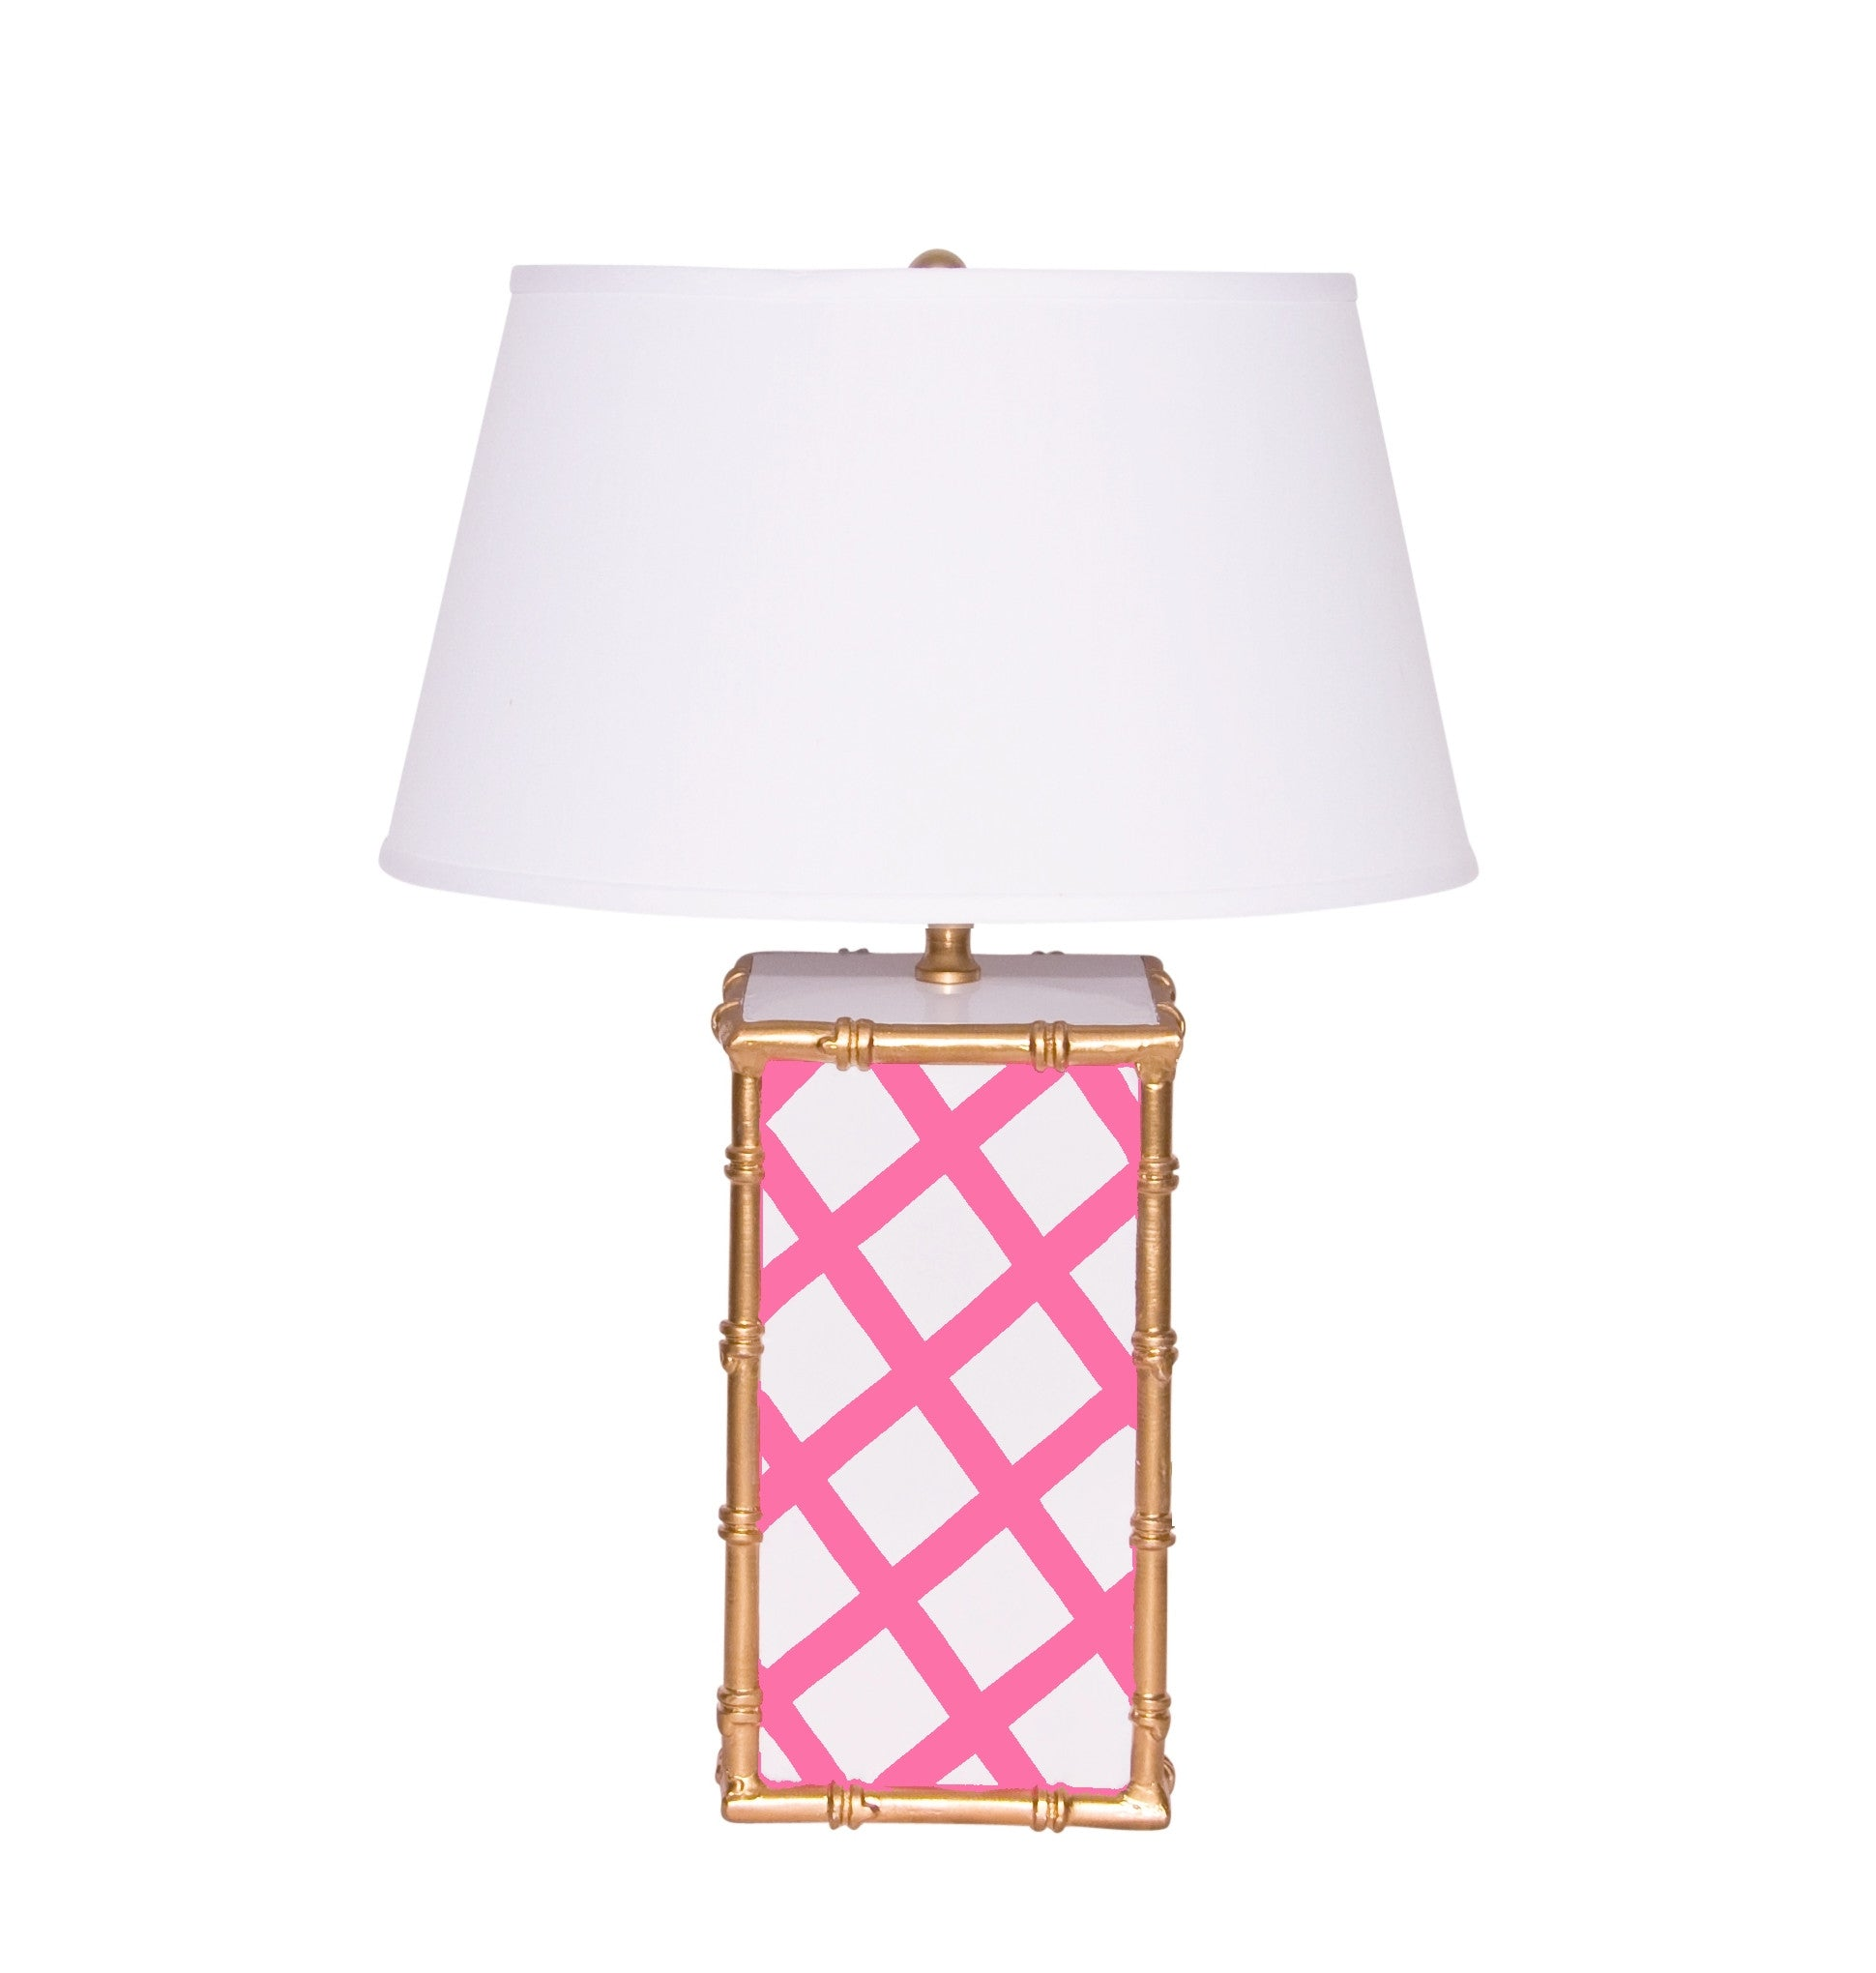 Bamboo Lamp in Pink Lattice